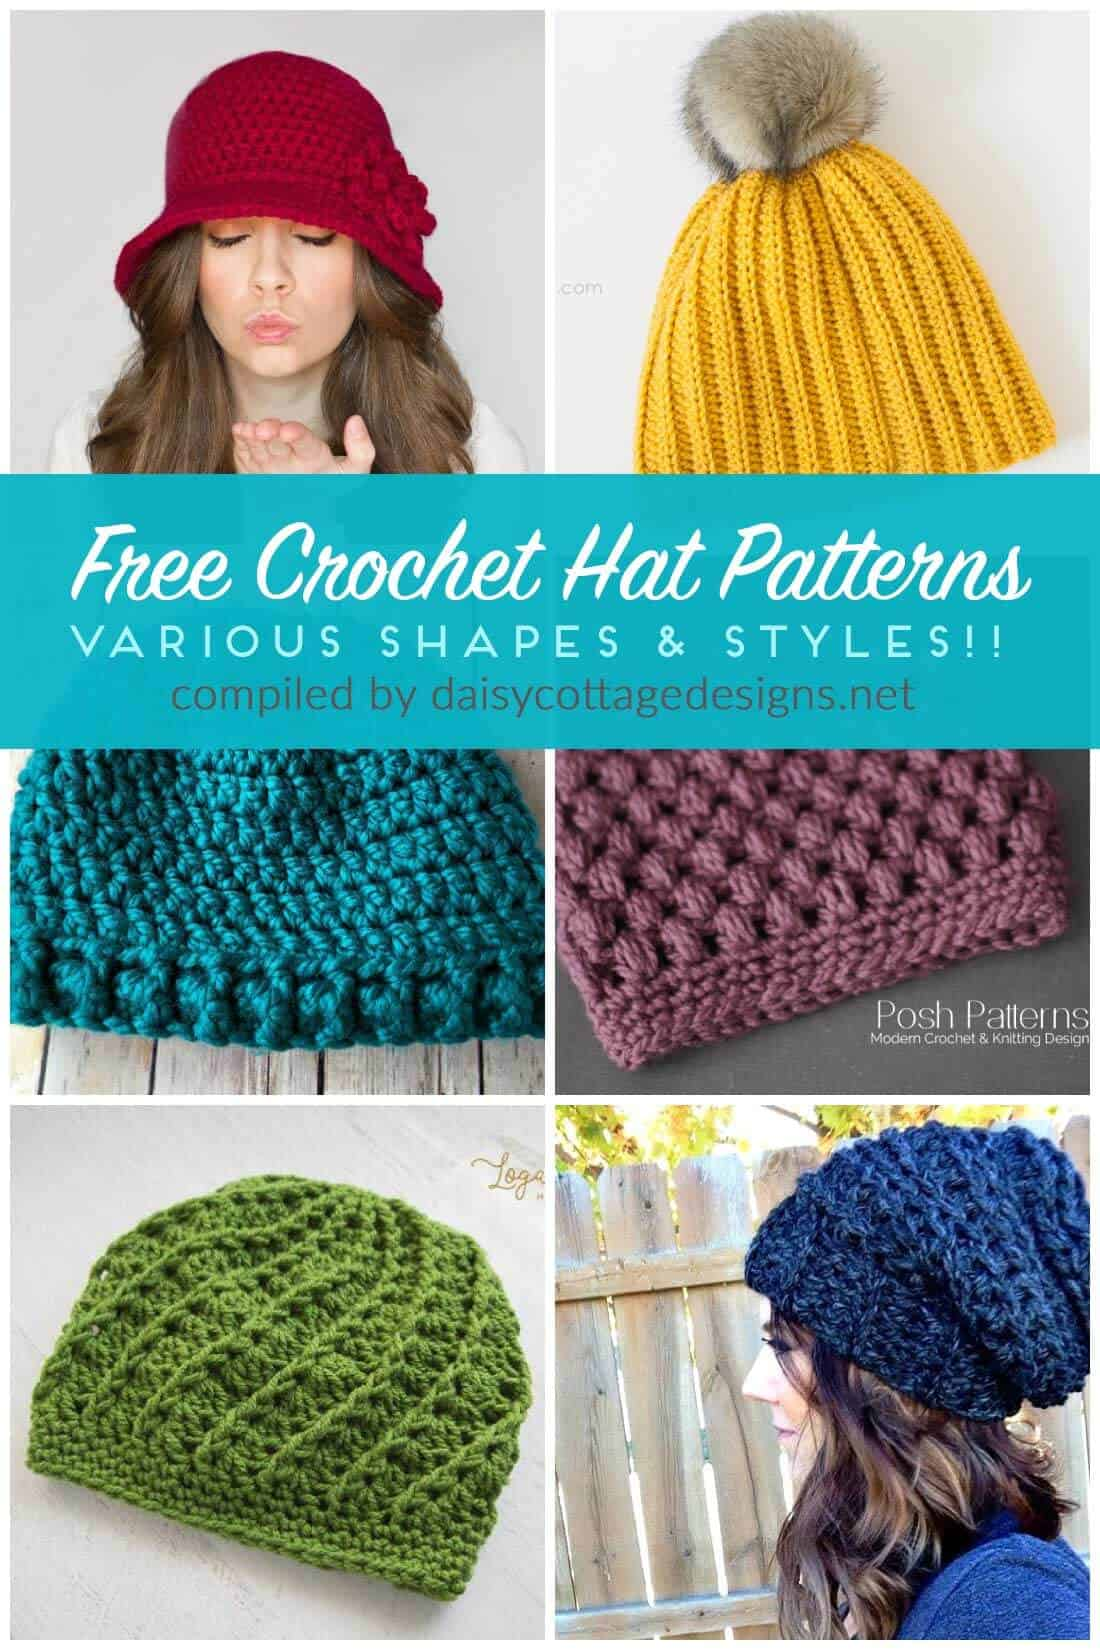 free crochet hat patterns | free crochet patterns | crochet patterns | Use these free crochet patterns to make adorable crochet hats for all the women in your life. From crochet slouchy hat patterns to crochet messy bun patterns, there are hat patterns of all shapes and designs in this collection on Daisy Cottage Designs.